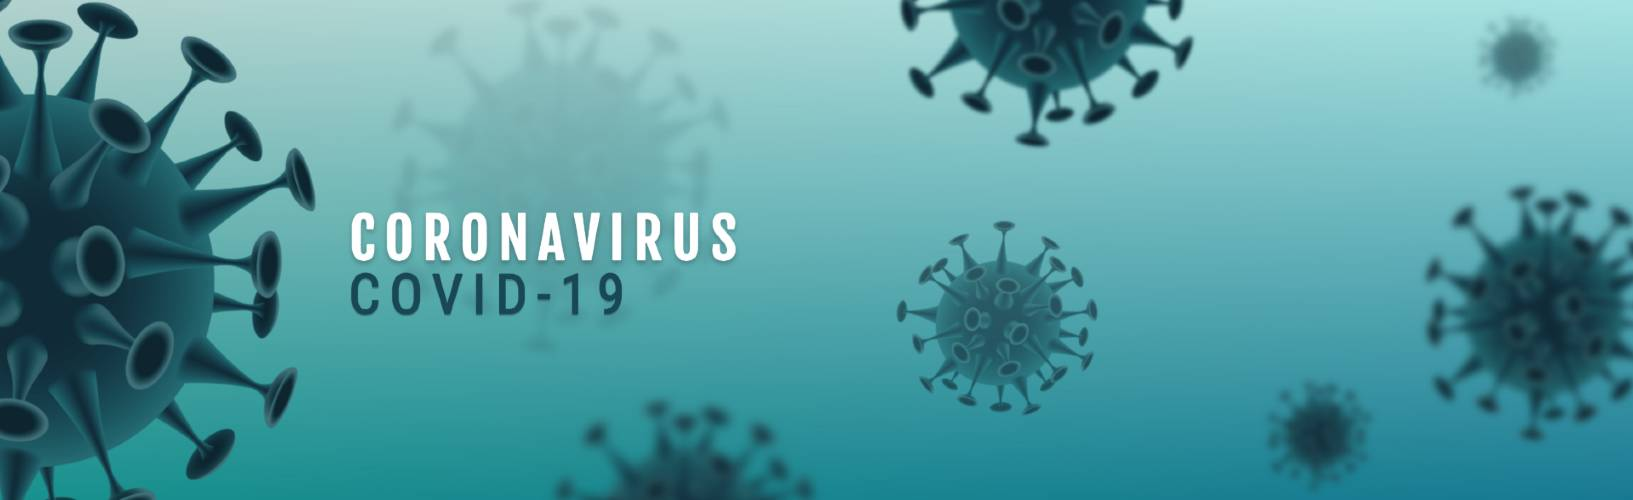 important things you need to know about coronavirus pandemic | important things you need to know about coronavirus pandemic